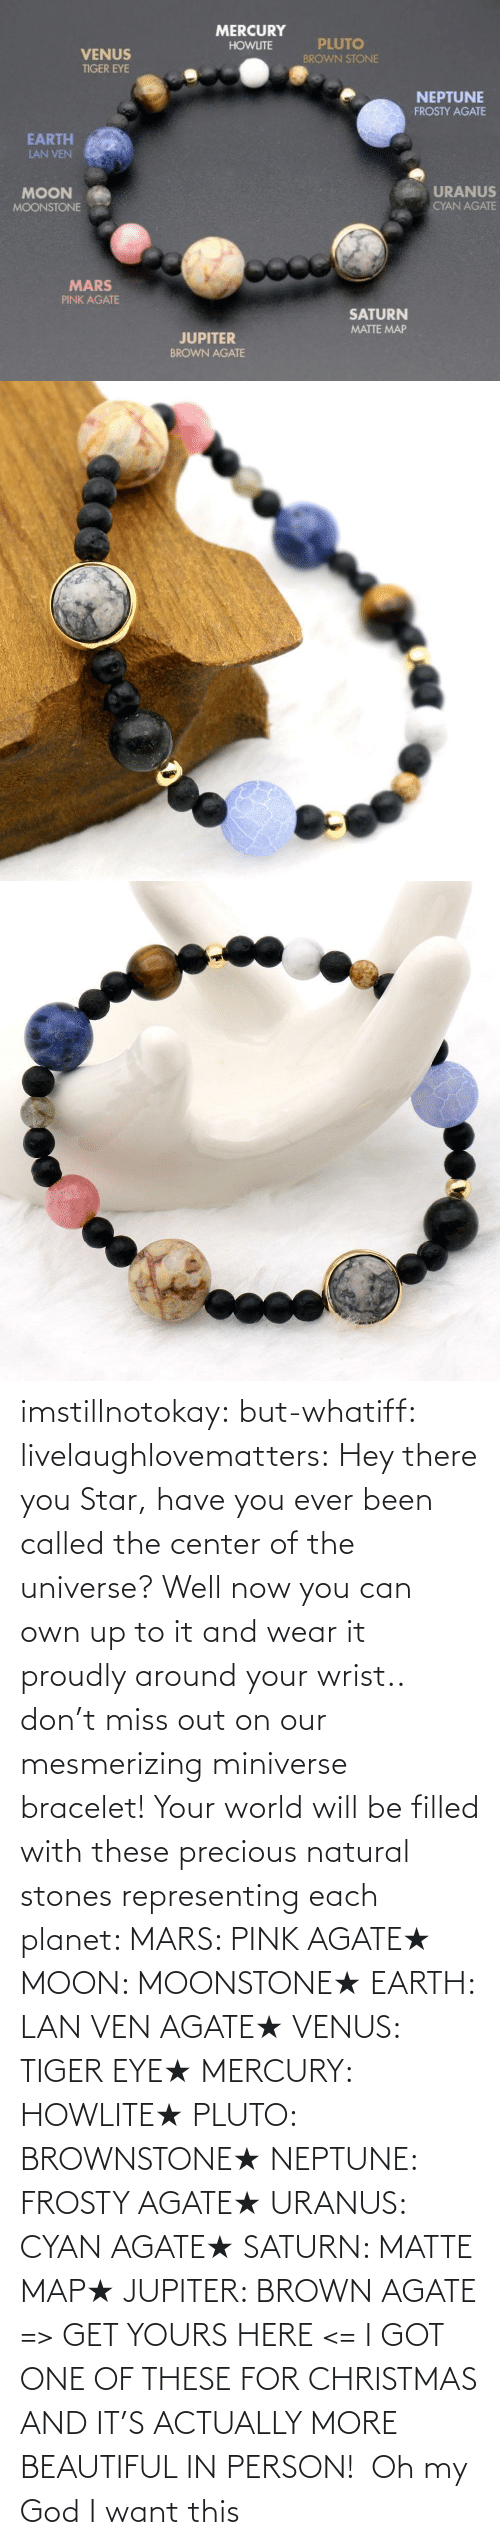 person: imstillnotokay:  but-whatiff: livelaughlovematters:  Hey there you Star, have you ever been called the center of the universe? Well now you can own up to it and wear it proudly around your wrist.. don't miss out on our mesmerizing miniverse bracelet! Your world will be filled with these precious natural stones representing each planet:  MARS: PINK AGATE★ MOON: MOONSTONE★ EARTH: LAN VEN AGATE★ VENUS: TIGER EYE★ MERCURY: HOWLITE★ PLUTO: BROWNSTONE★ NEPTUNE: FROSTY AGATE★ URANUS: CYAN AGATE★ SATURN: MATTE MAP★ JUPITER: BROWN AGATE => GET YOURS HERE <=  I GOT ONE OF THESE FOR CHRISTMAS AND IT'S ACTUALLY MORE BEAUTIFUL IN PERSON!     Oh my God I want this